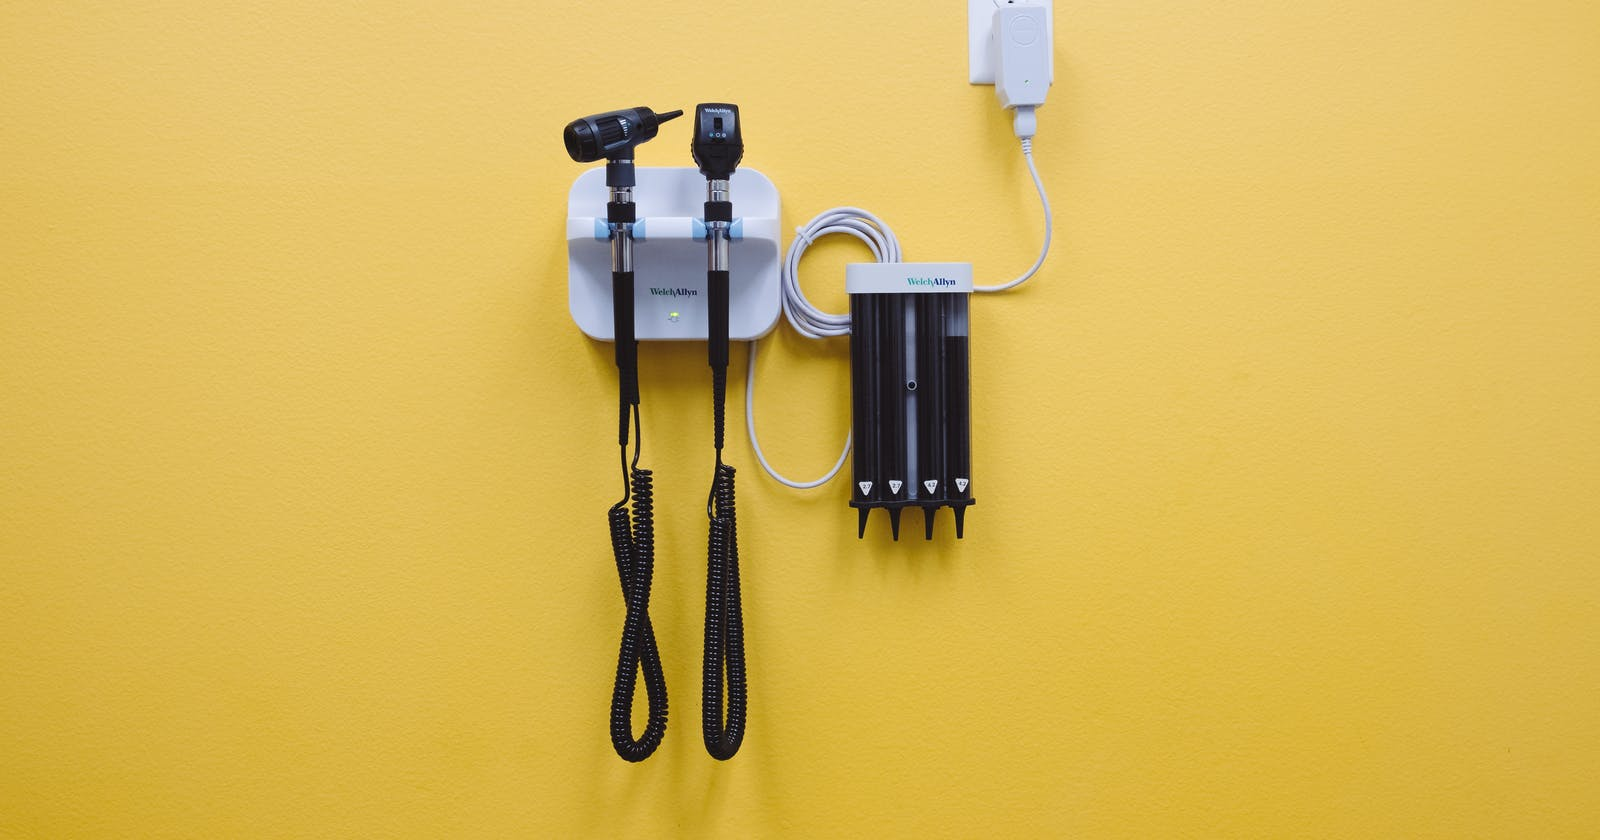 The Adapter Design Pattern